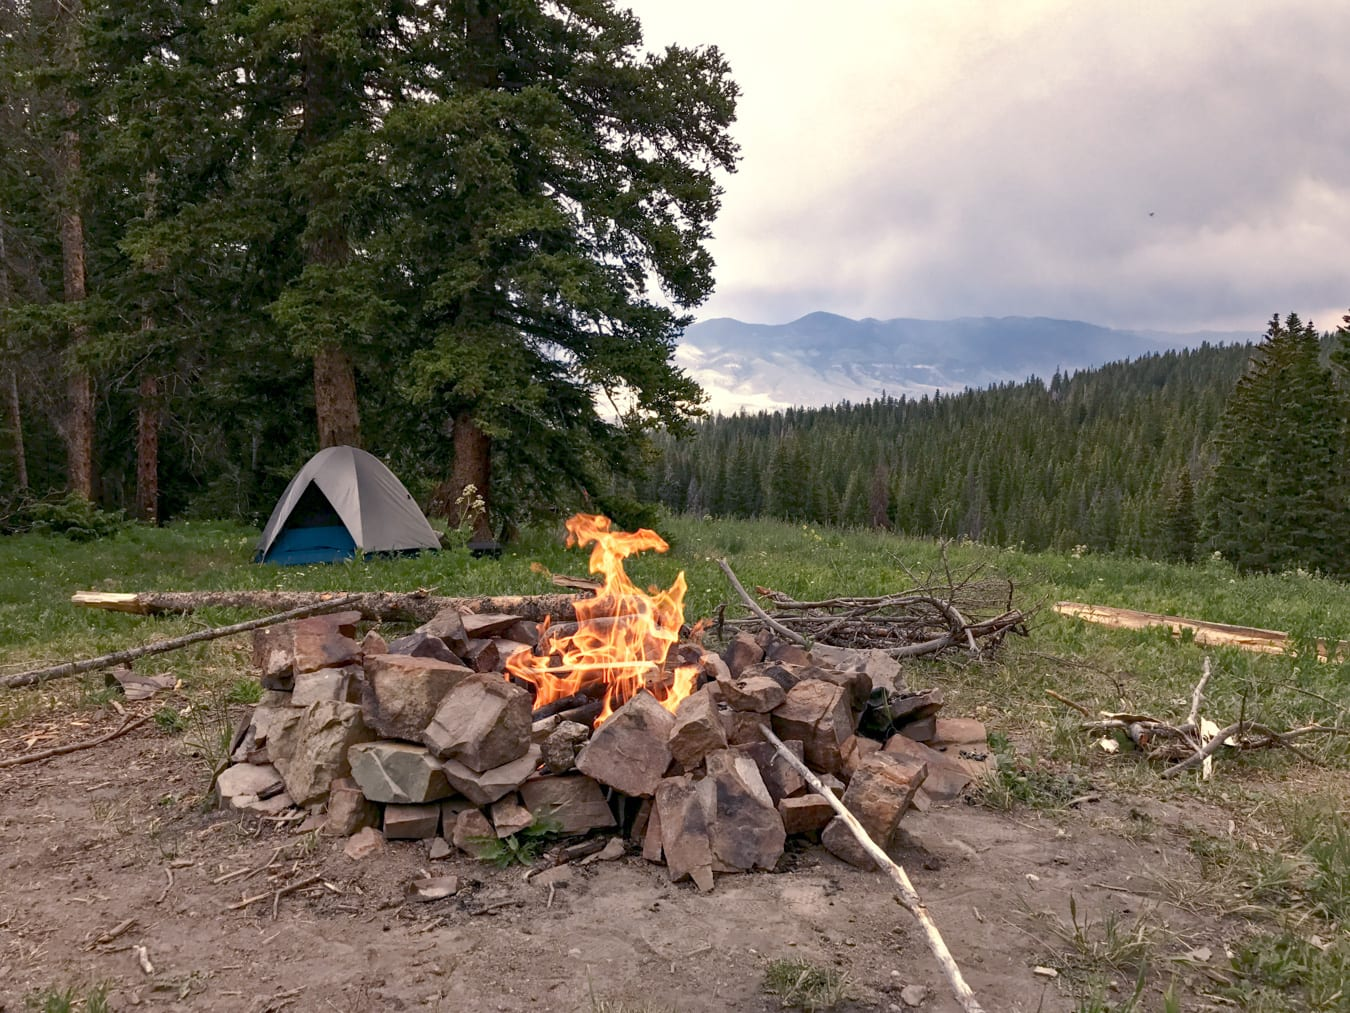 Colorado Dispersed Campsite with Tent and Campfire